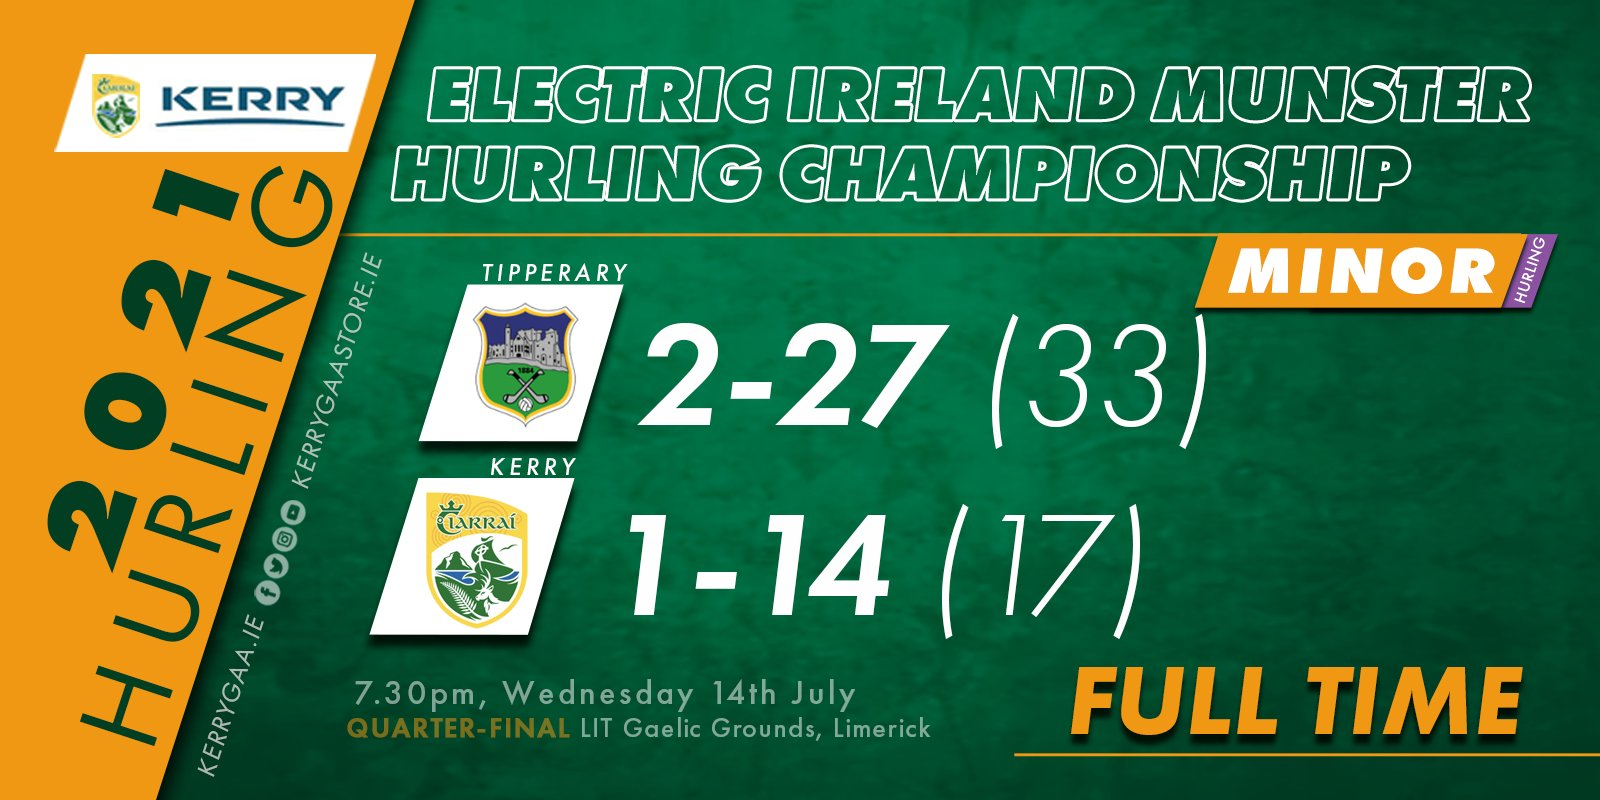 Defeat for Kerry Minors in Munster Quarter-Final